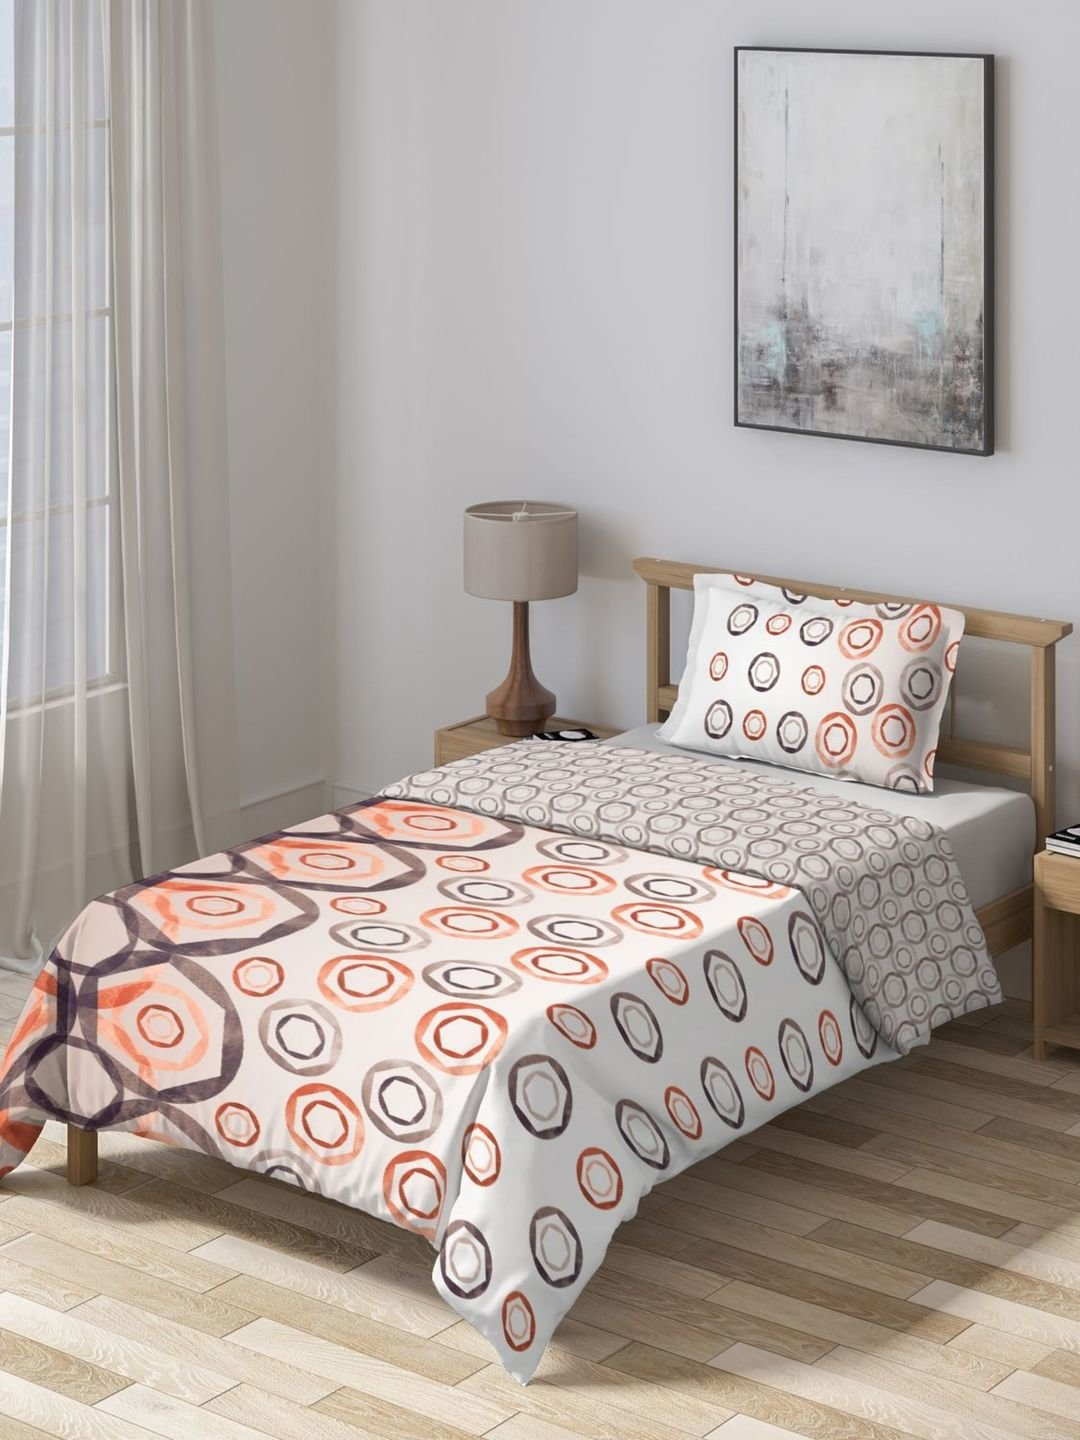 Ddecor Live Beautiful Orange Brown Cotton 150 Tc Comforter Set Of 1 From Ddecor At Best Prices On Tata Cliq